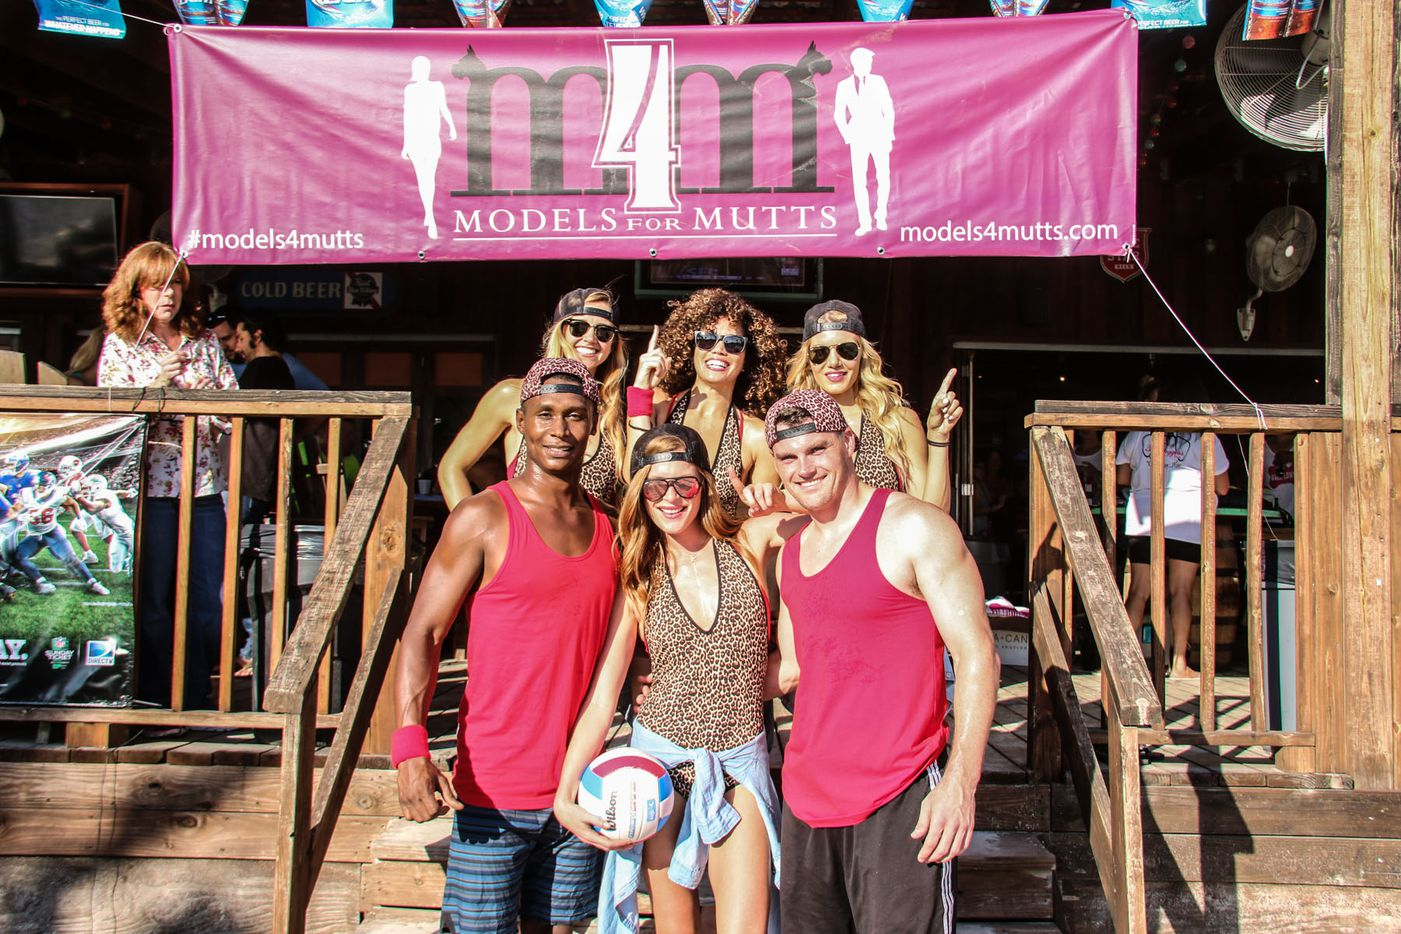 Team Twerk at Models 4 Mutts Sand Volleyball tournament for Operation Kindness, which was held at Sandbar Cantina and Grill on September 19, 2015